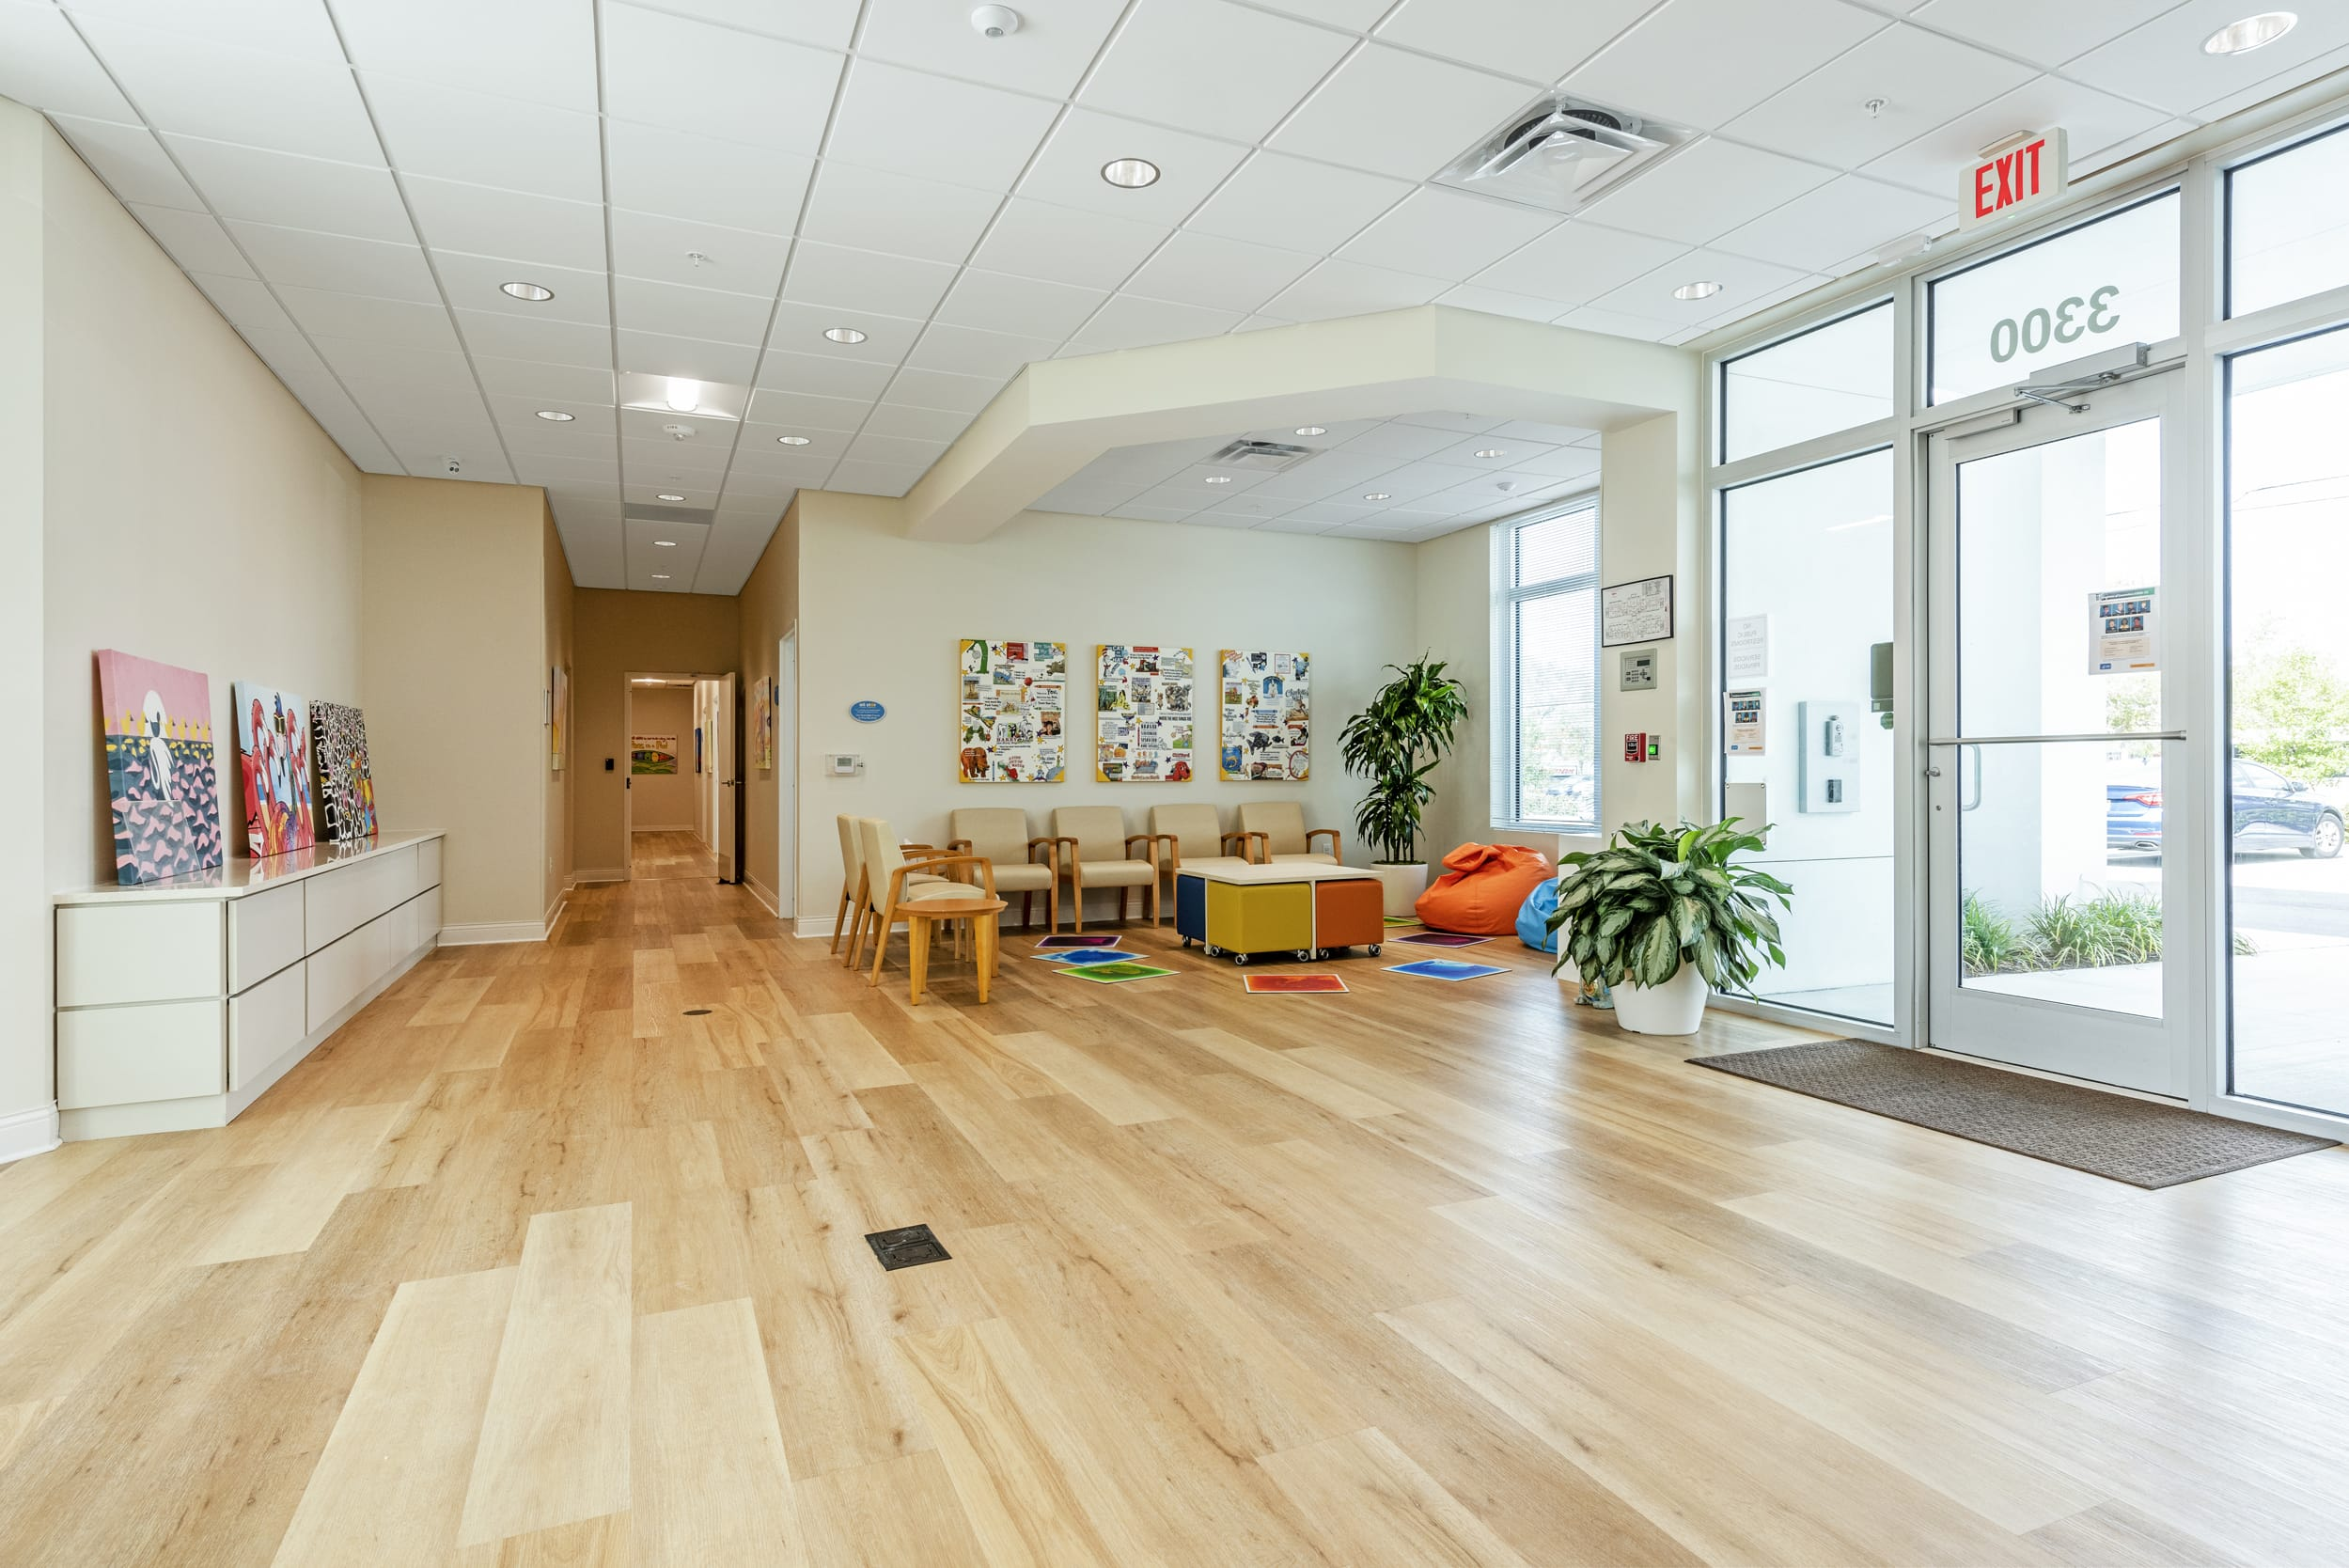 Reception Loby Entrance Wood Luxury Floors Waiting Room Biege Leather Chairs